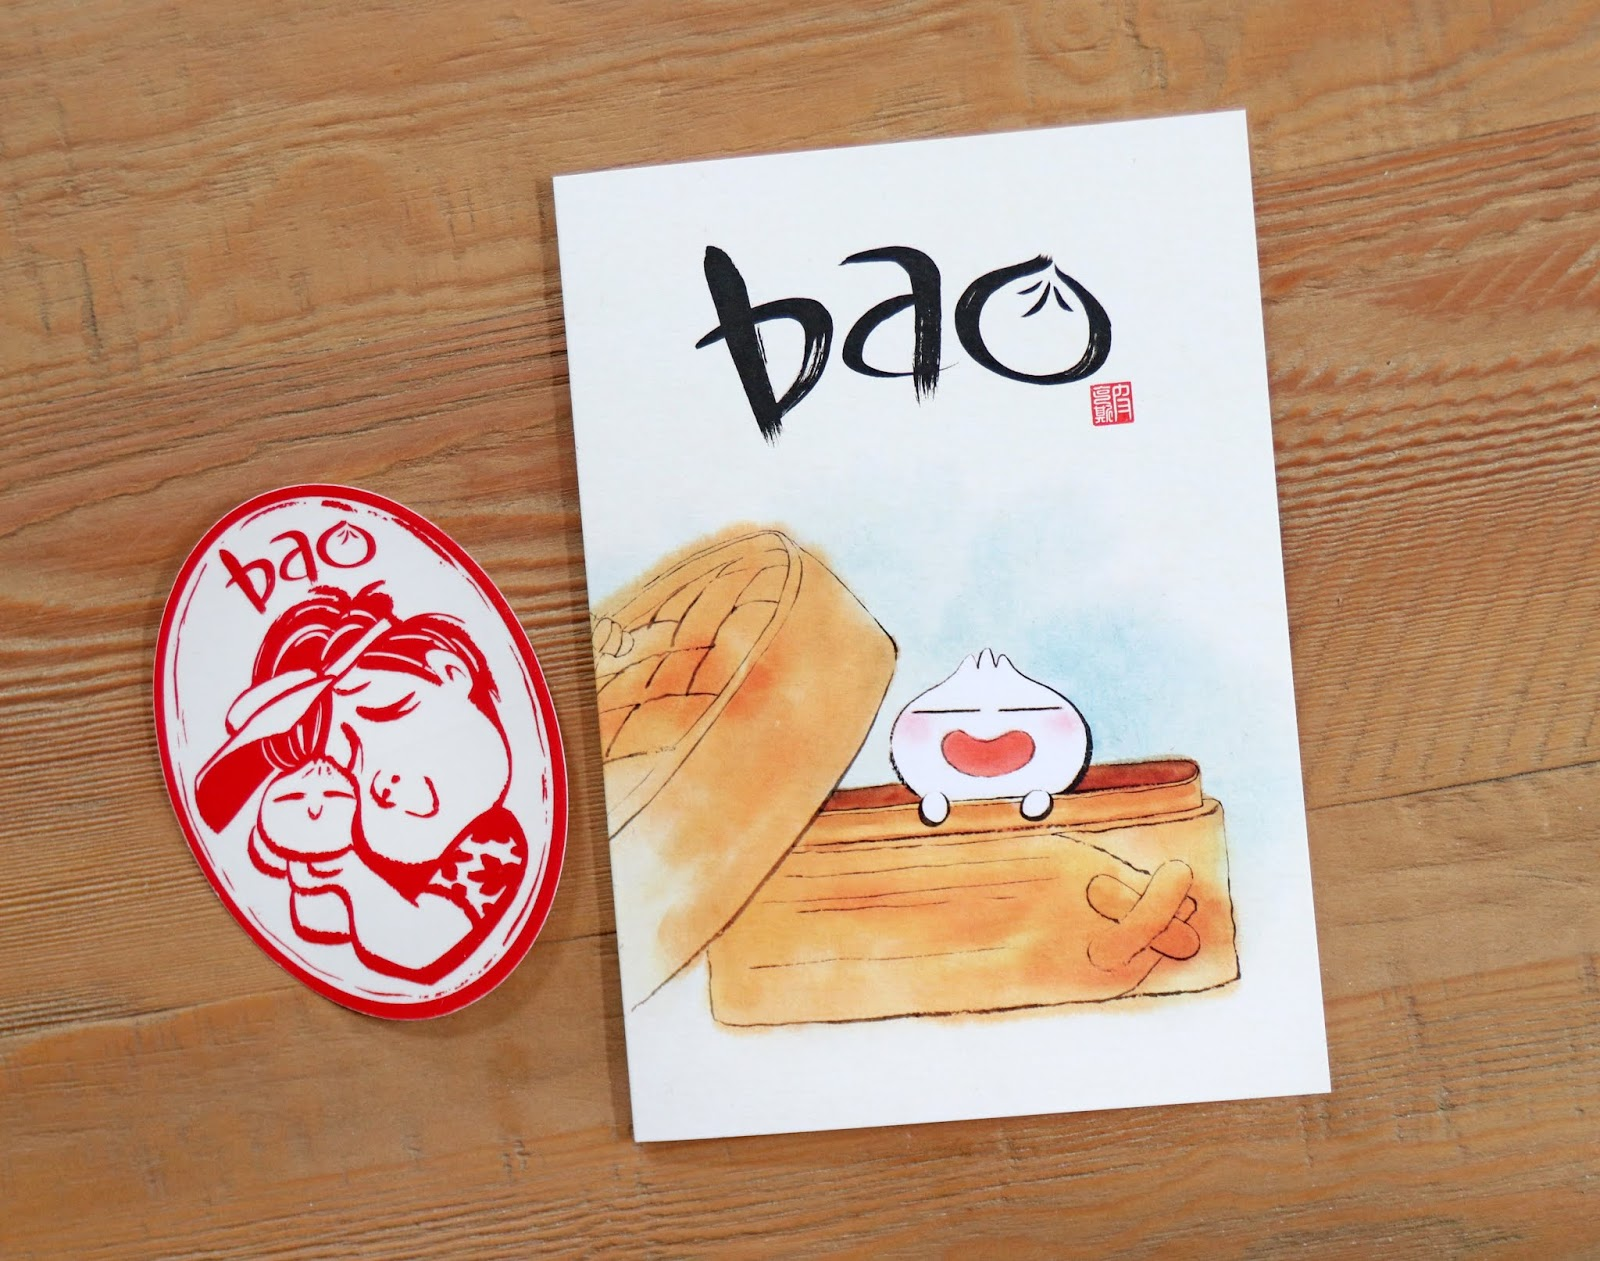 pixar bao studio store exclusive